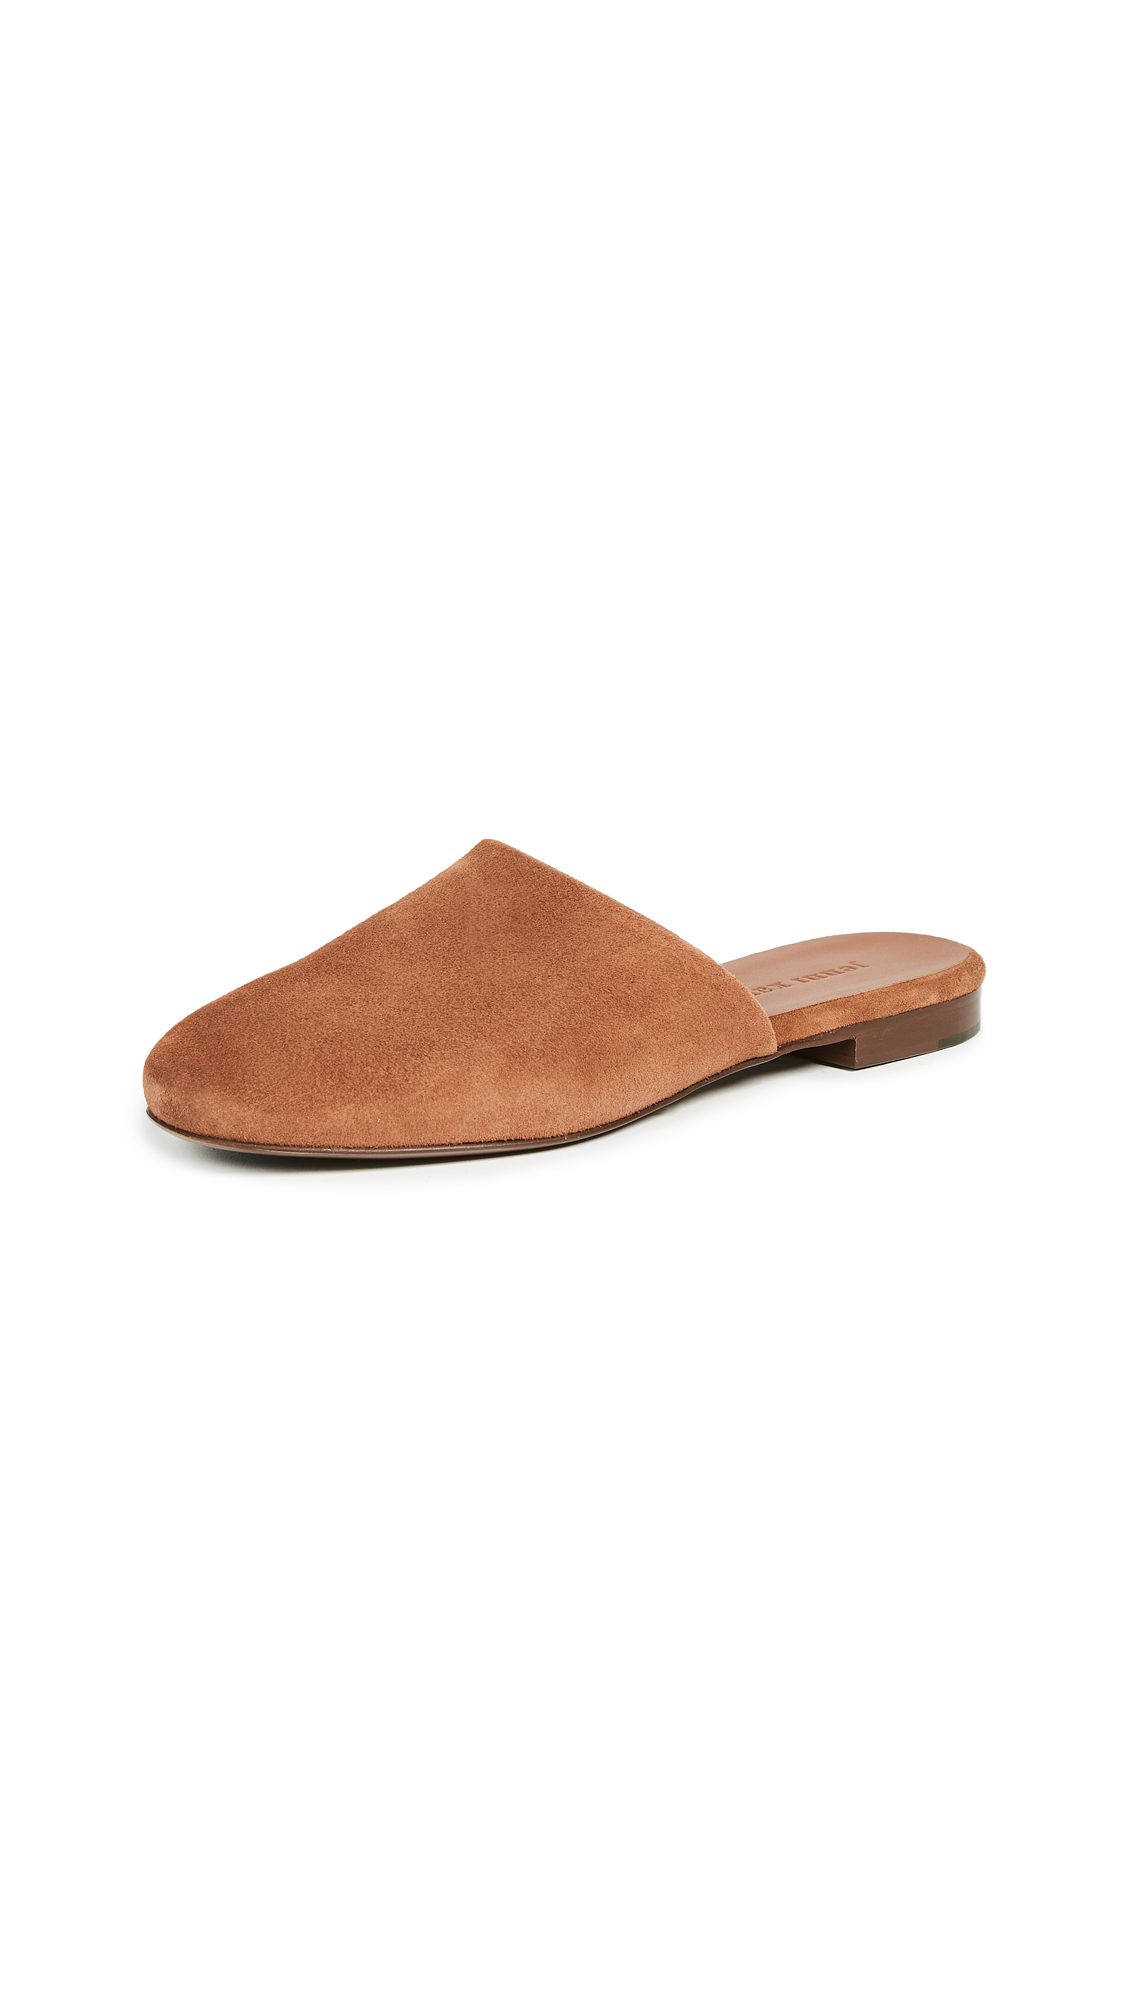 Jenni Kayne Suede Slippers - Saddle